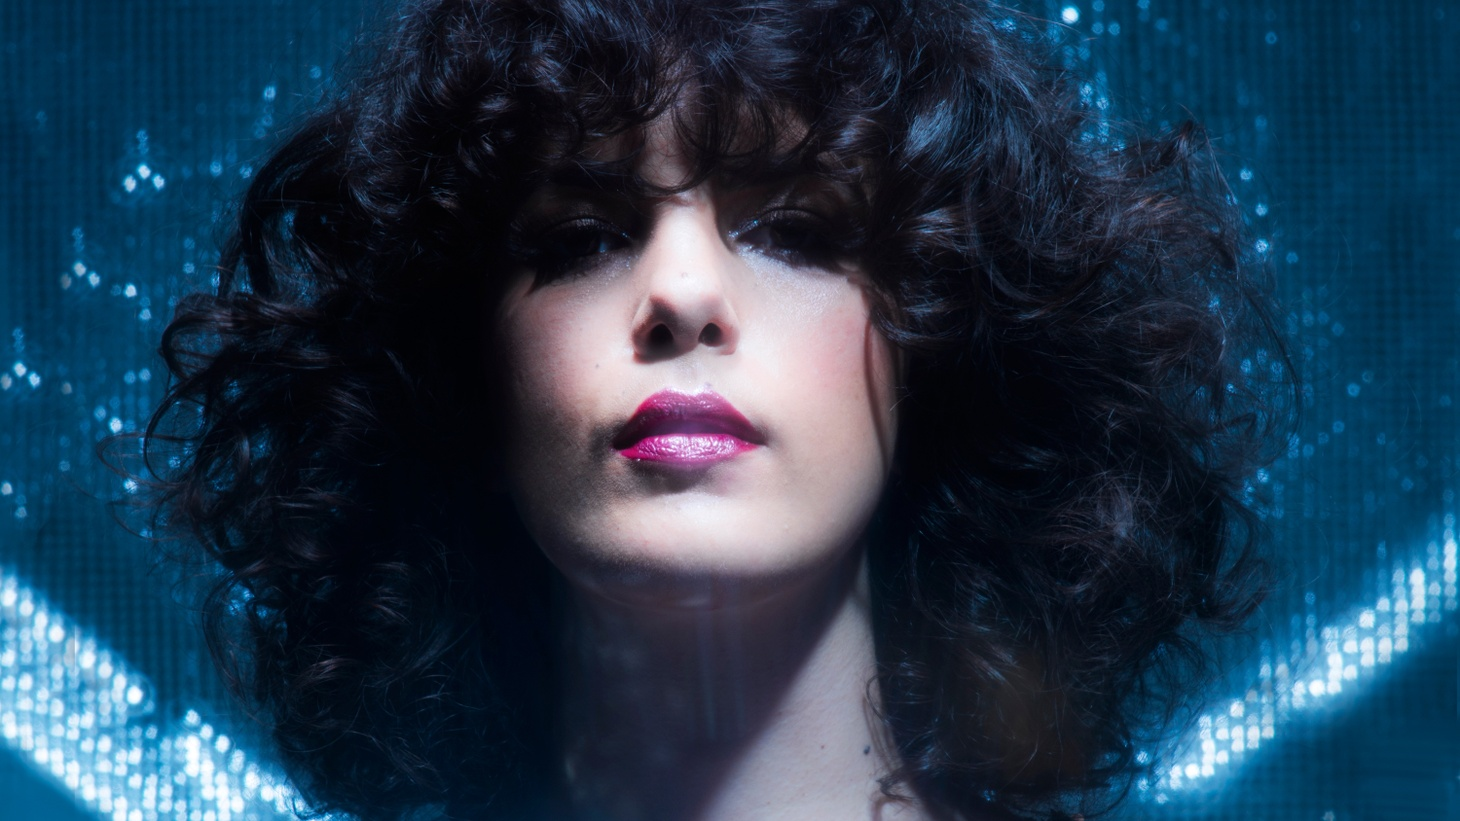 Brazilian artist Céu let the beats be her guide while paving a bold new seductive sound for her new album, Tropix.